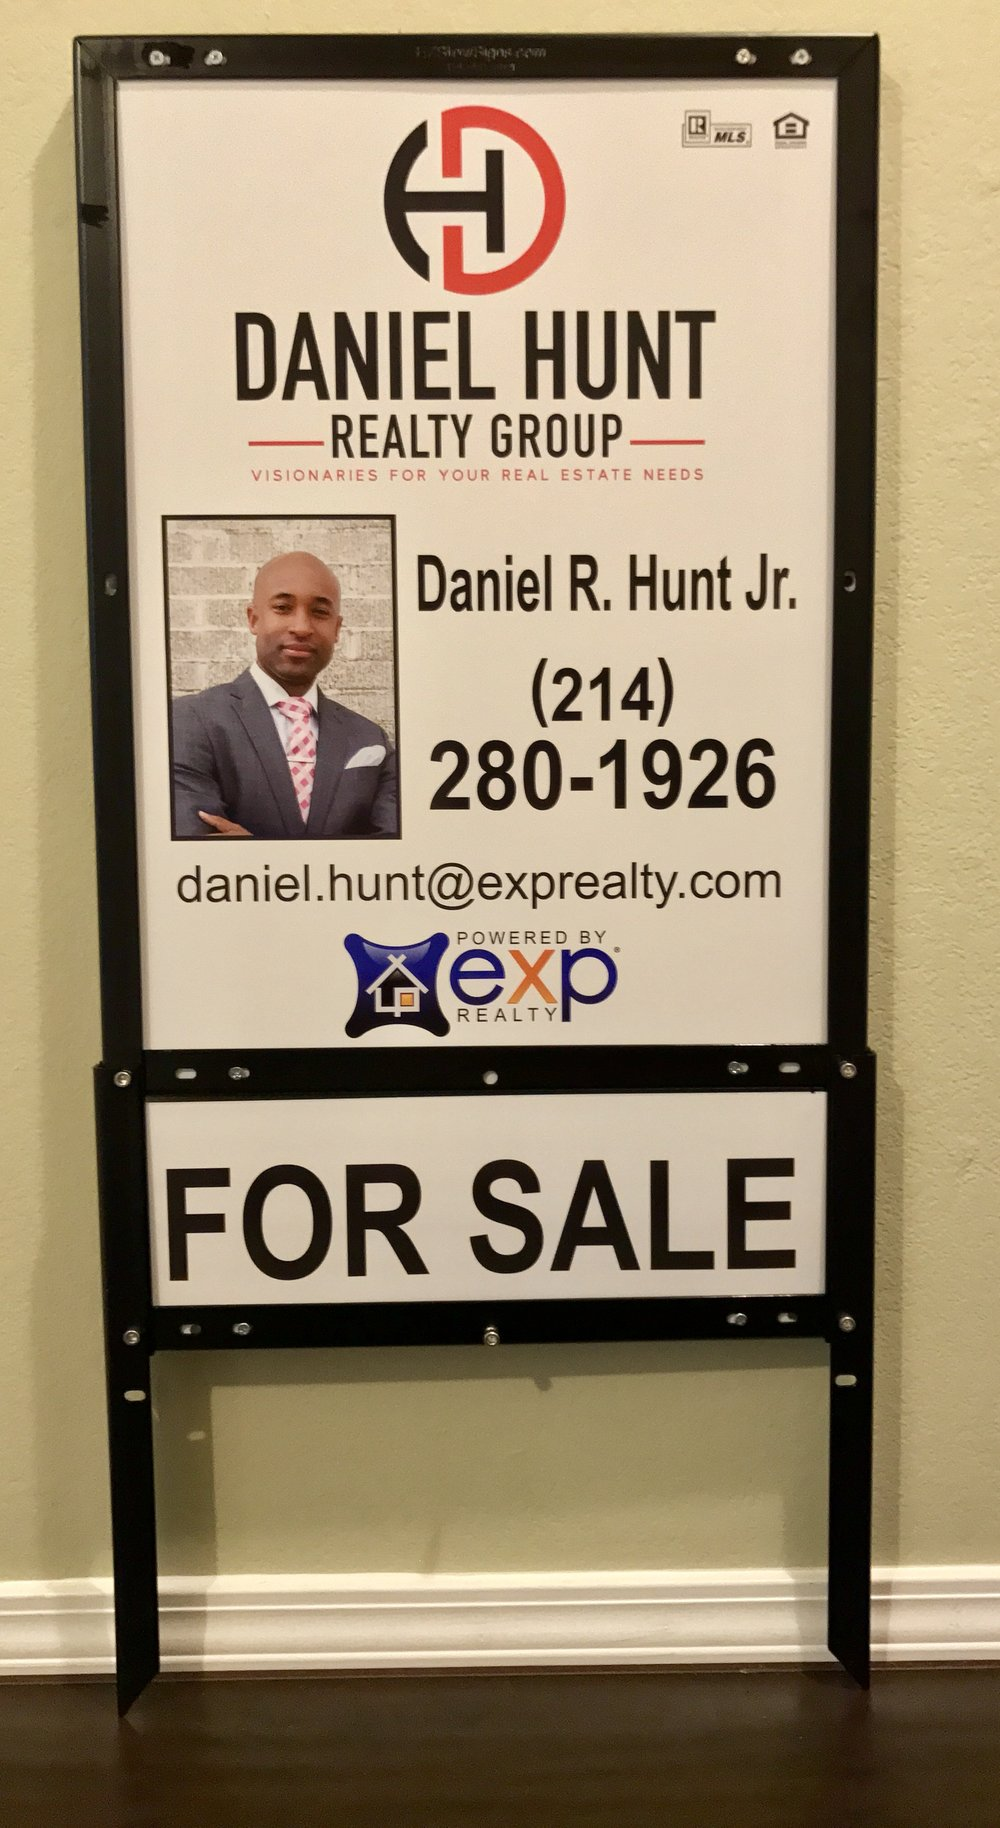 EXP Realty Daniel Hunt Vertical Combo.jpg